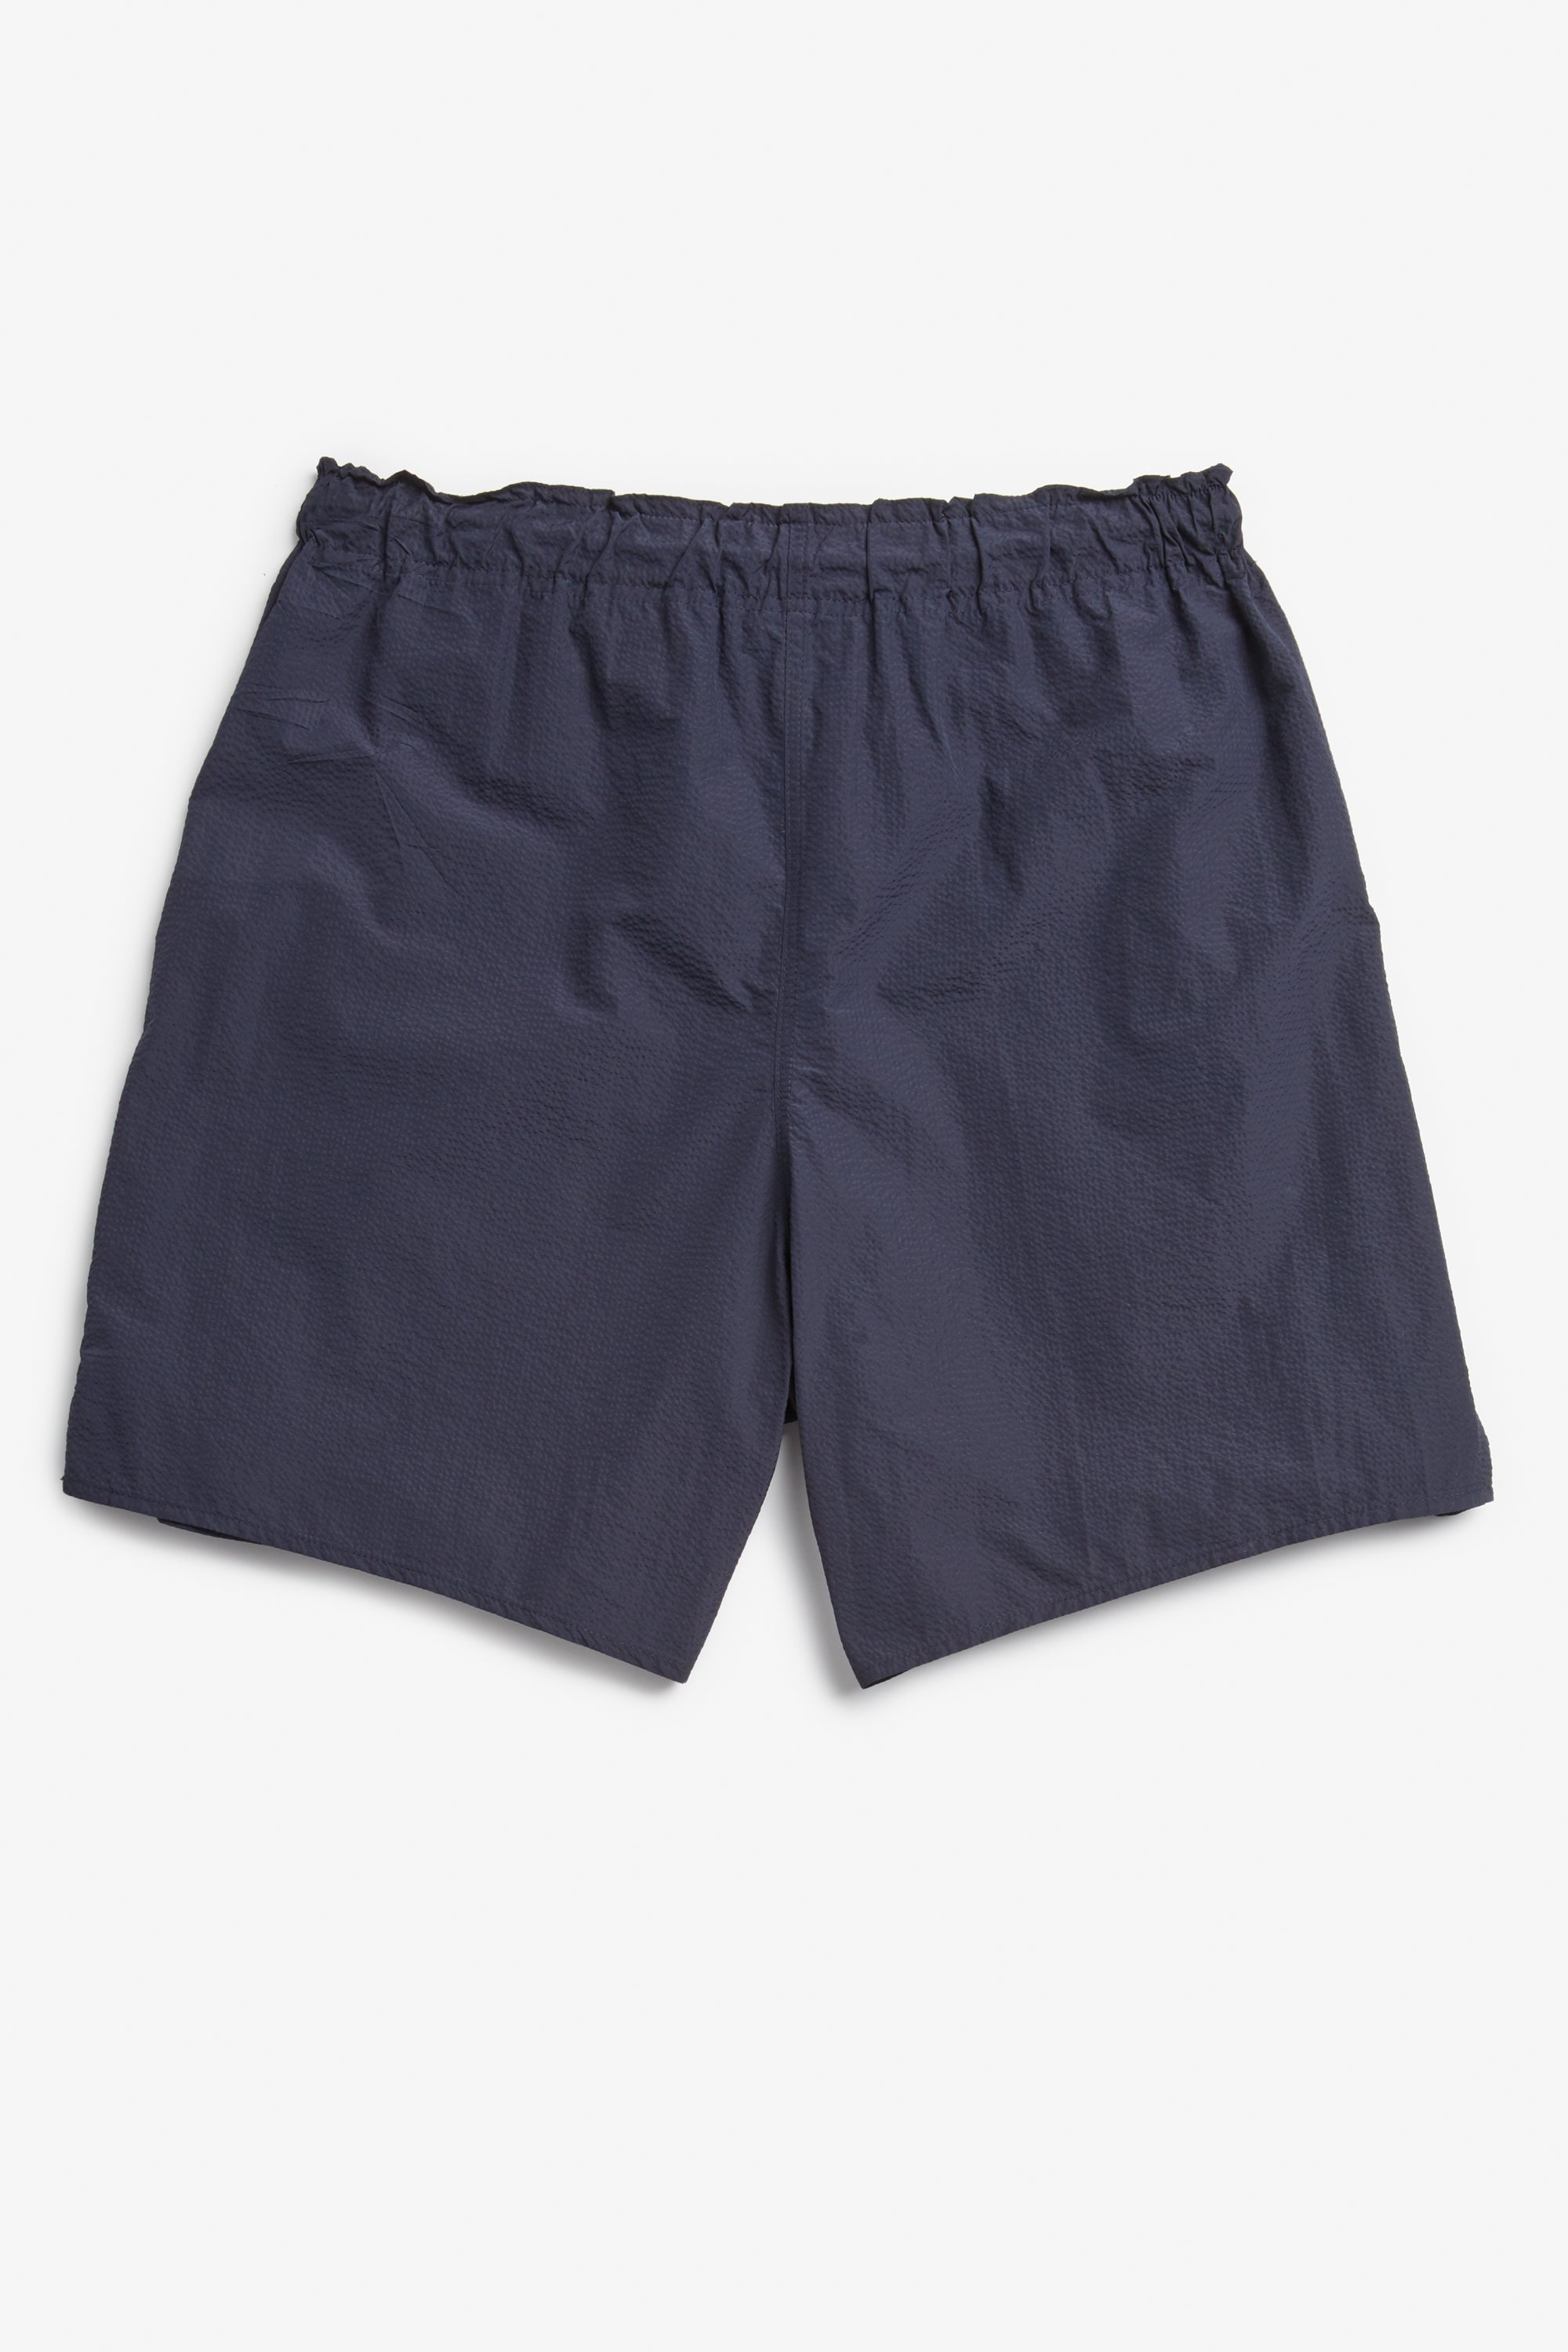 navy seersucker drawstring shorts